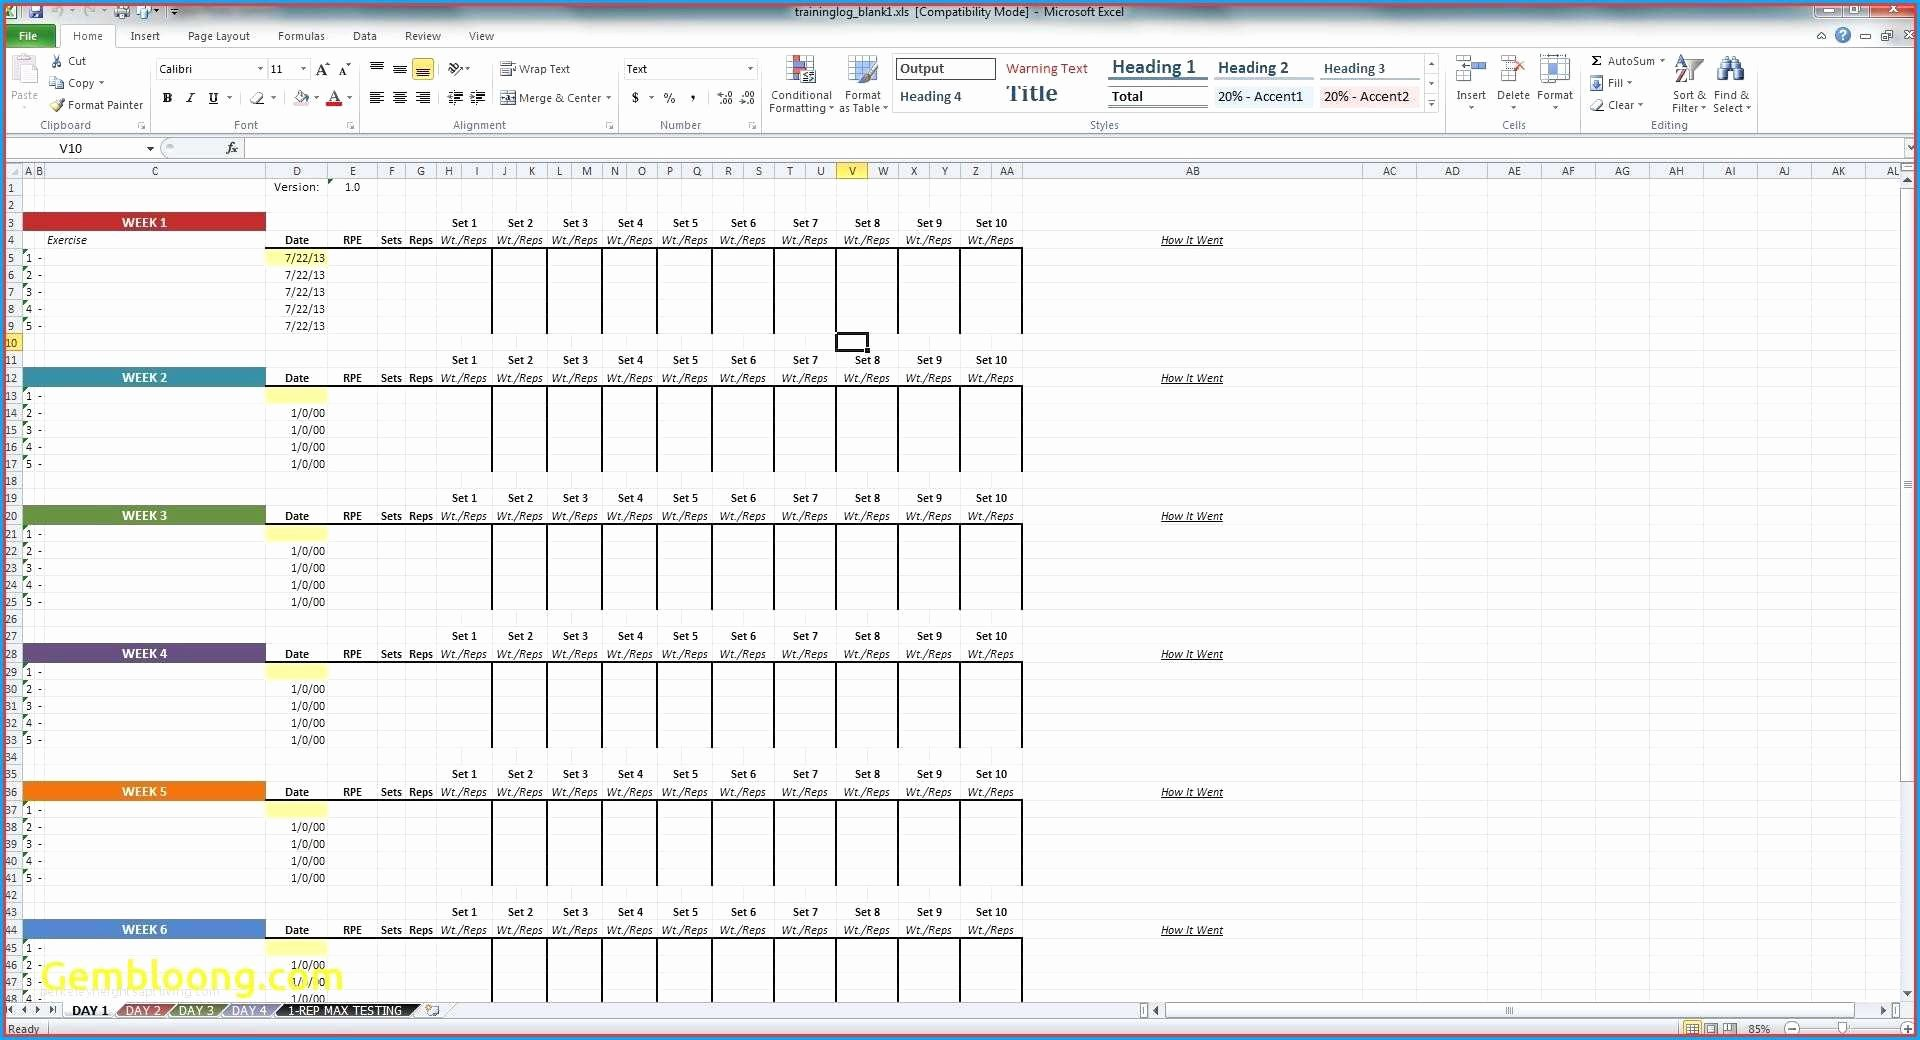 Employee Training Plan Template Awesome Employee Training Tracker Excel Template Awe Inspiring